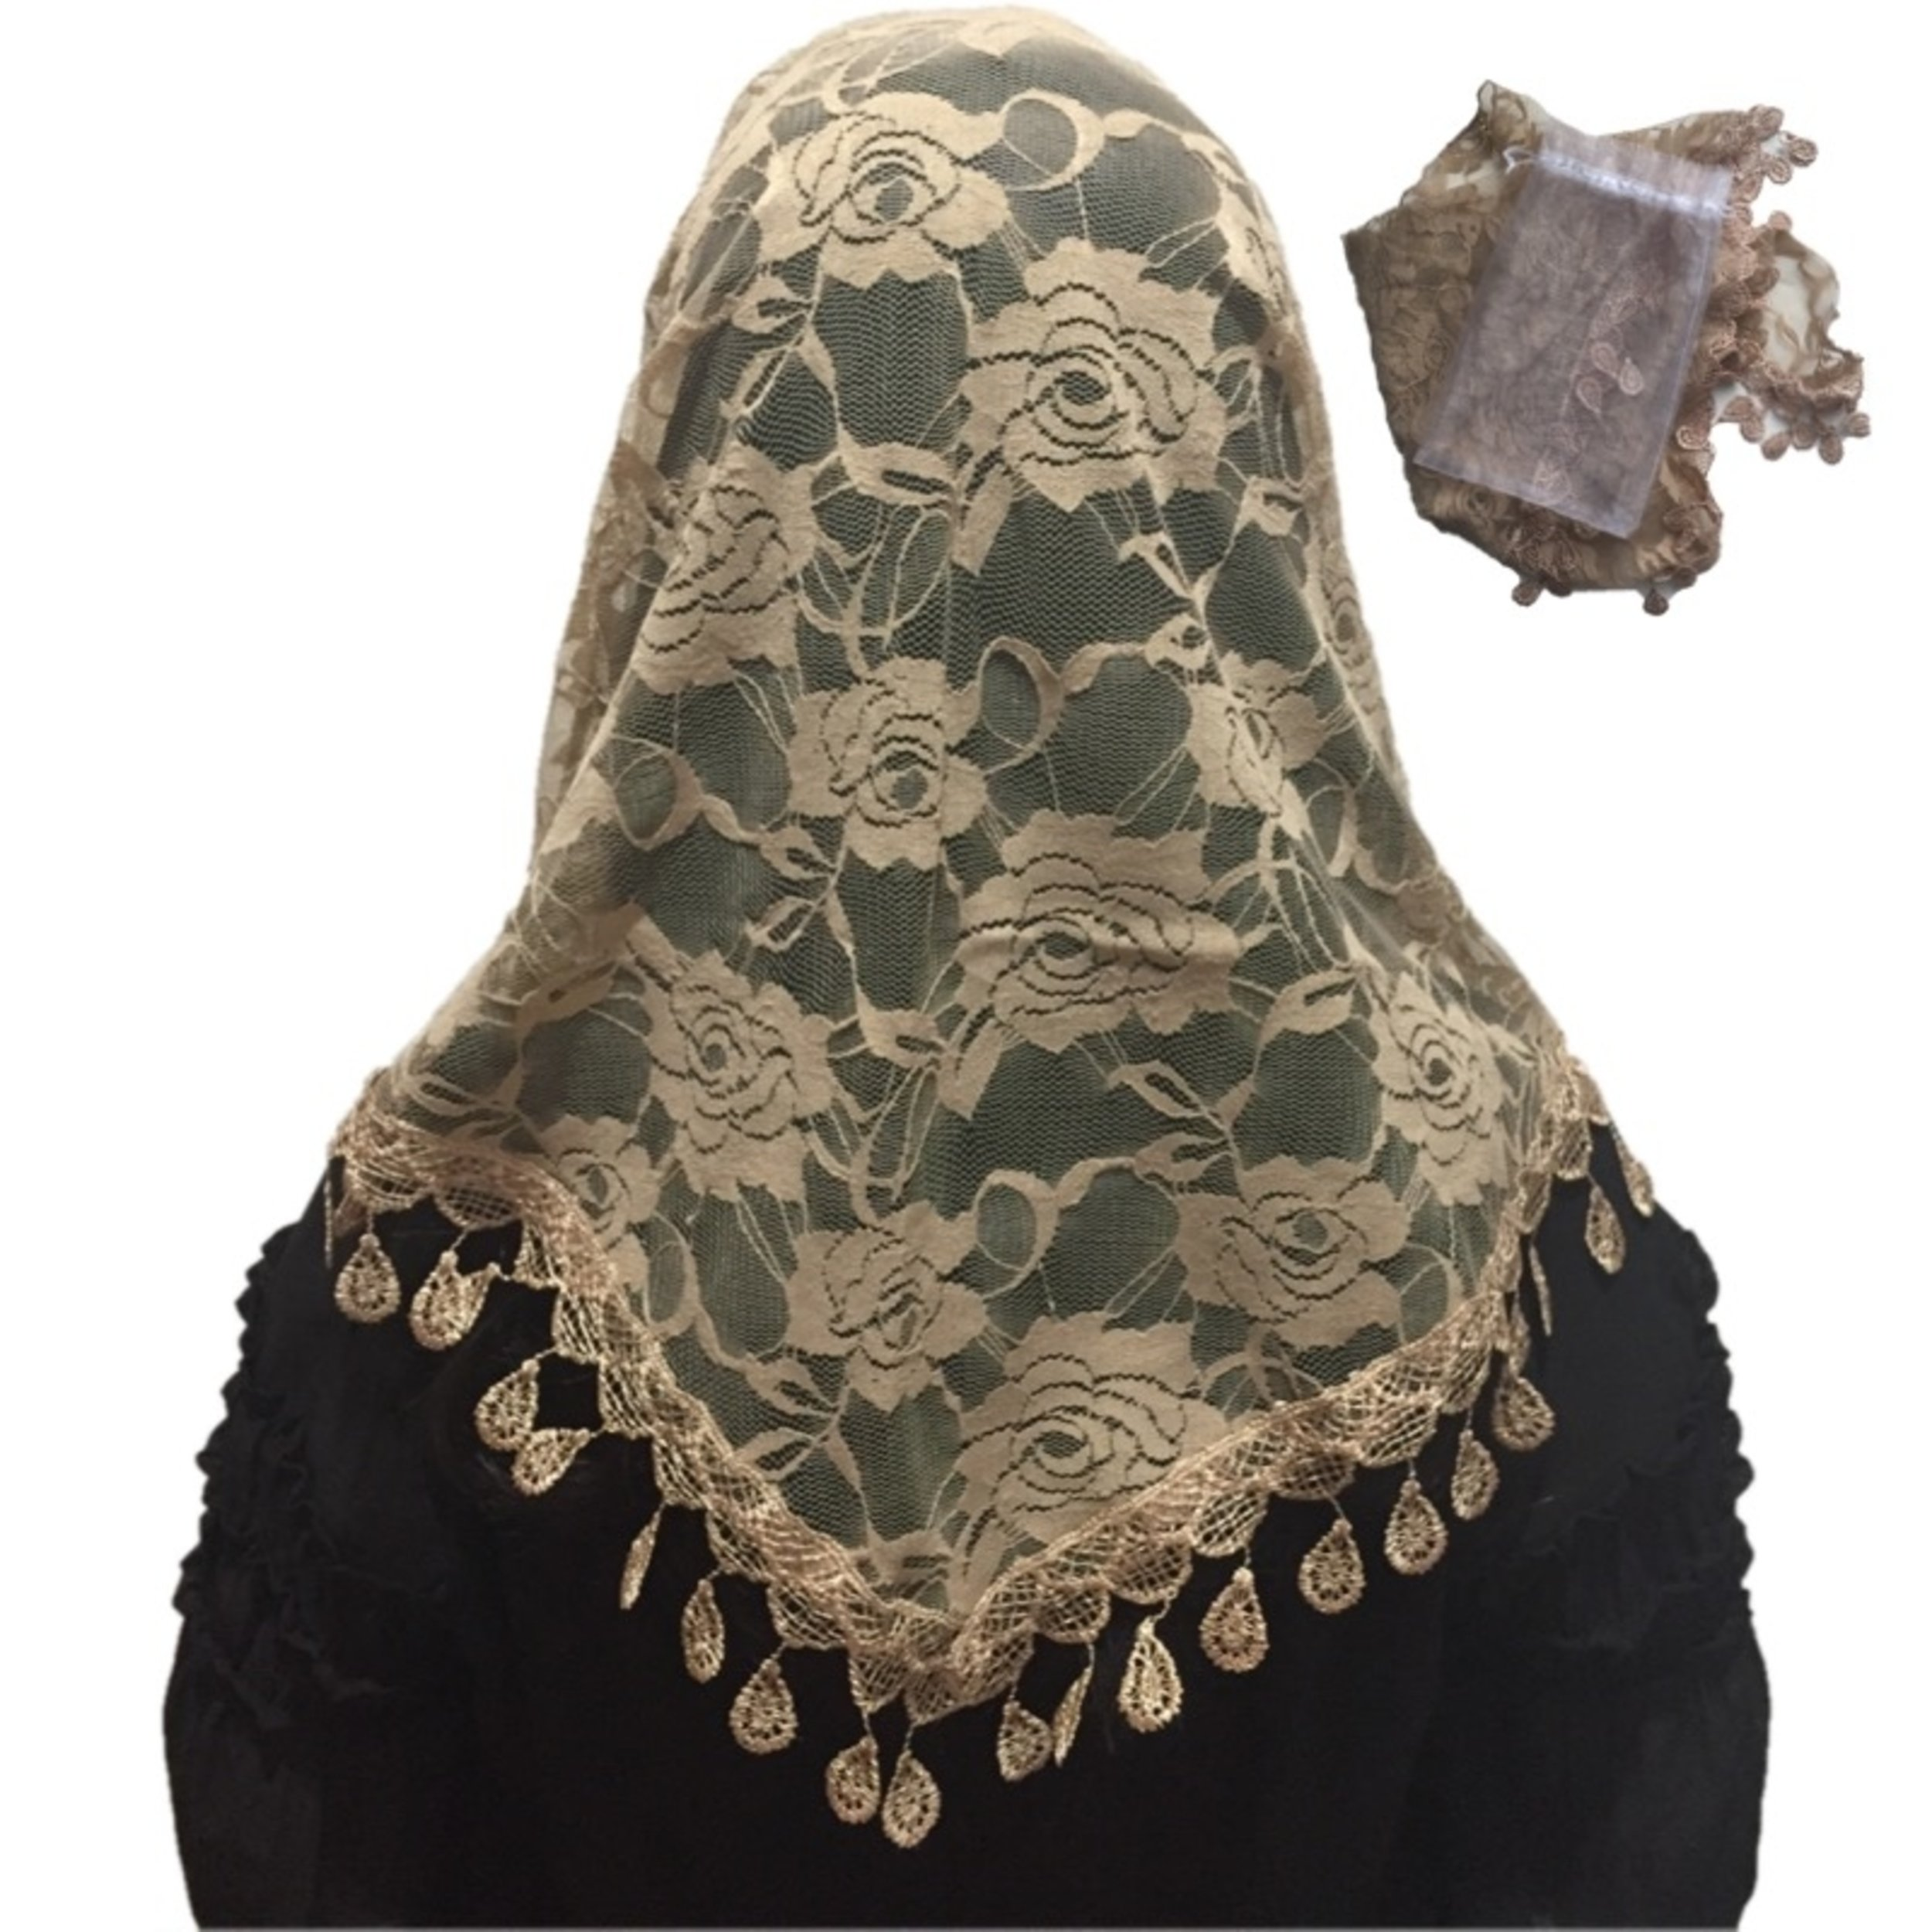 Mass Veil Catholic Church Mantilla Beige Chapel Lace Shawl or Scarf Latin Mass Head Cover with a Handy Storage Pouch Tan Champagne Light Brown (Beige) by Beatus Veils